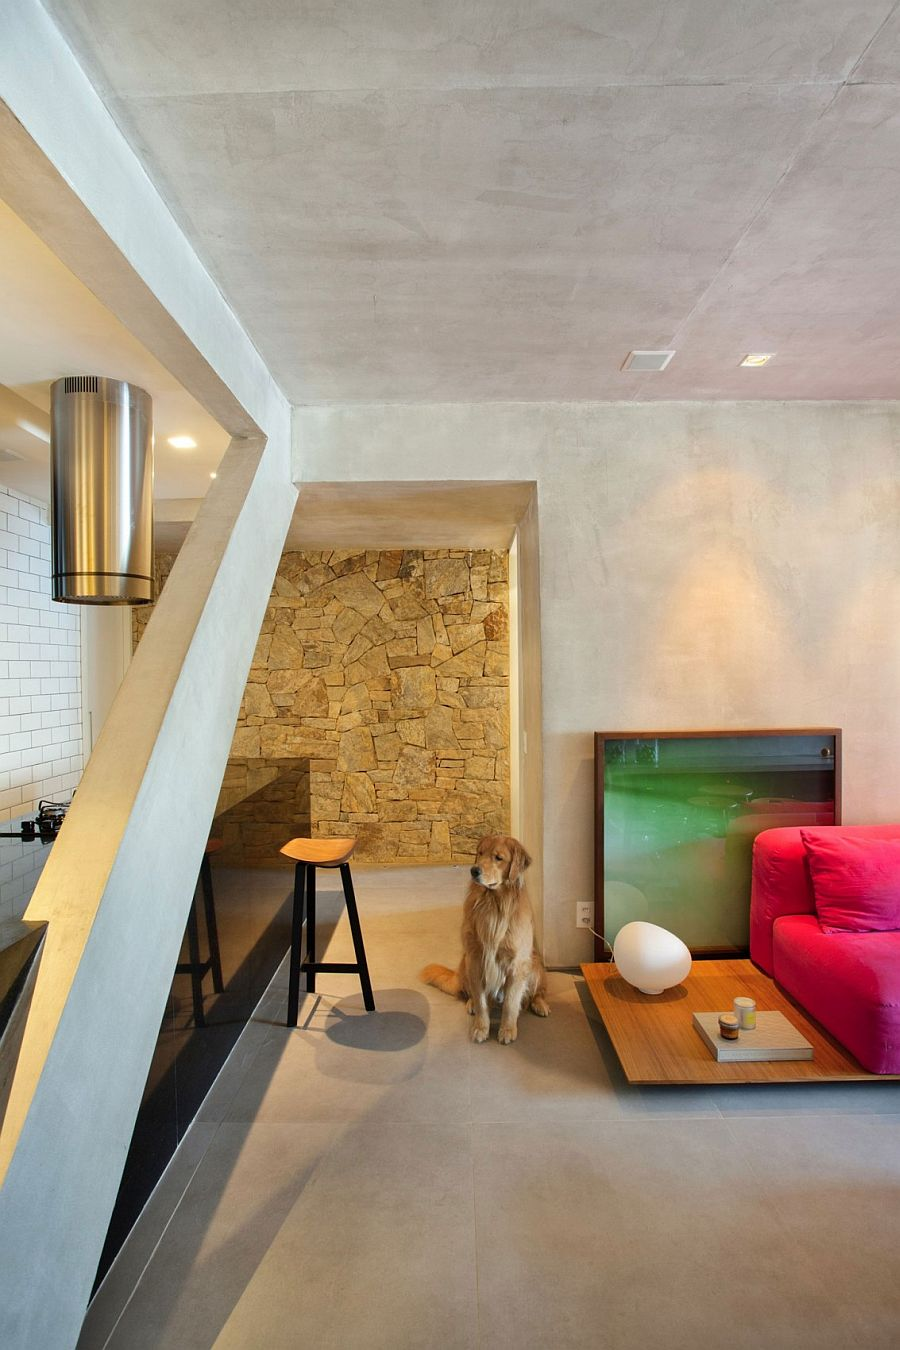 Stone wall in the kitchen adds a contrasting texture to the concrete interior